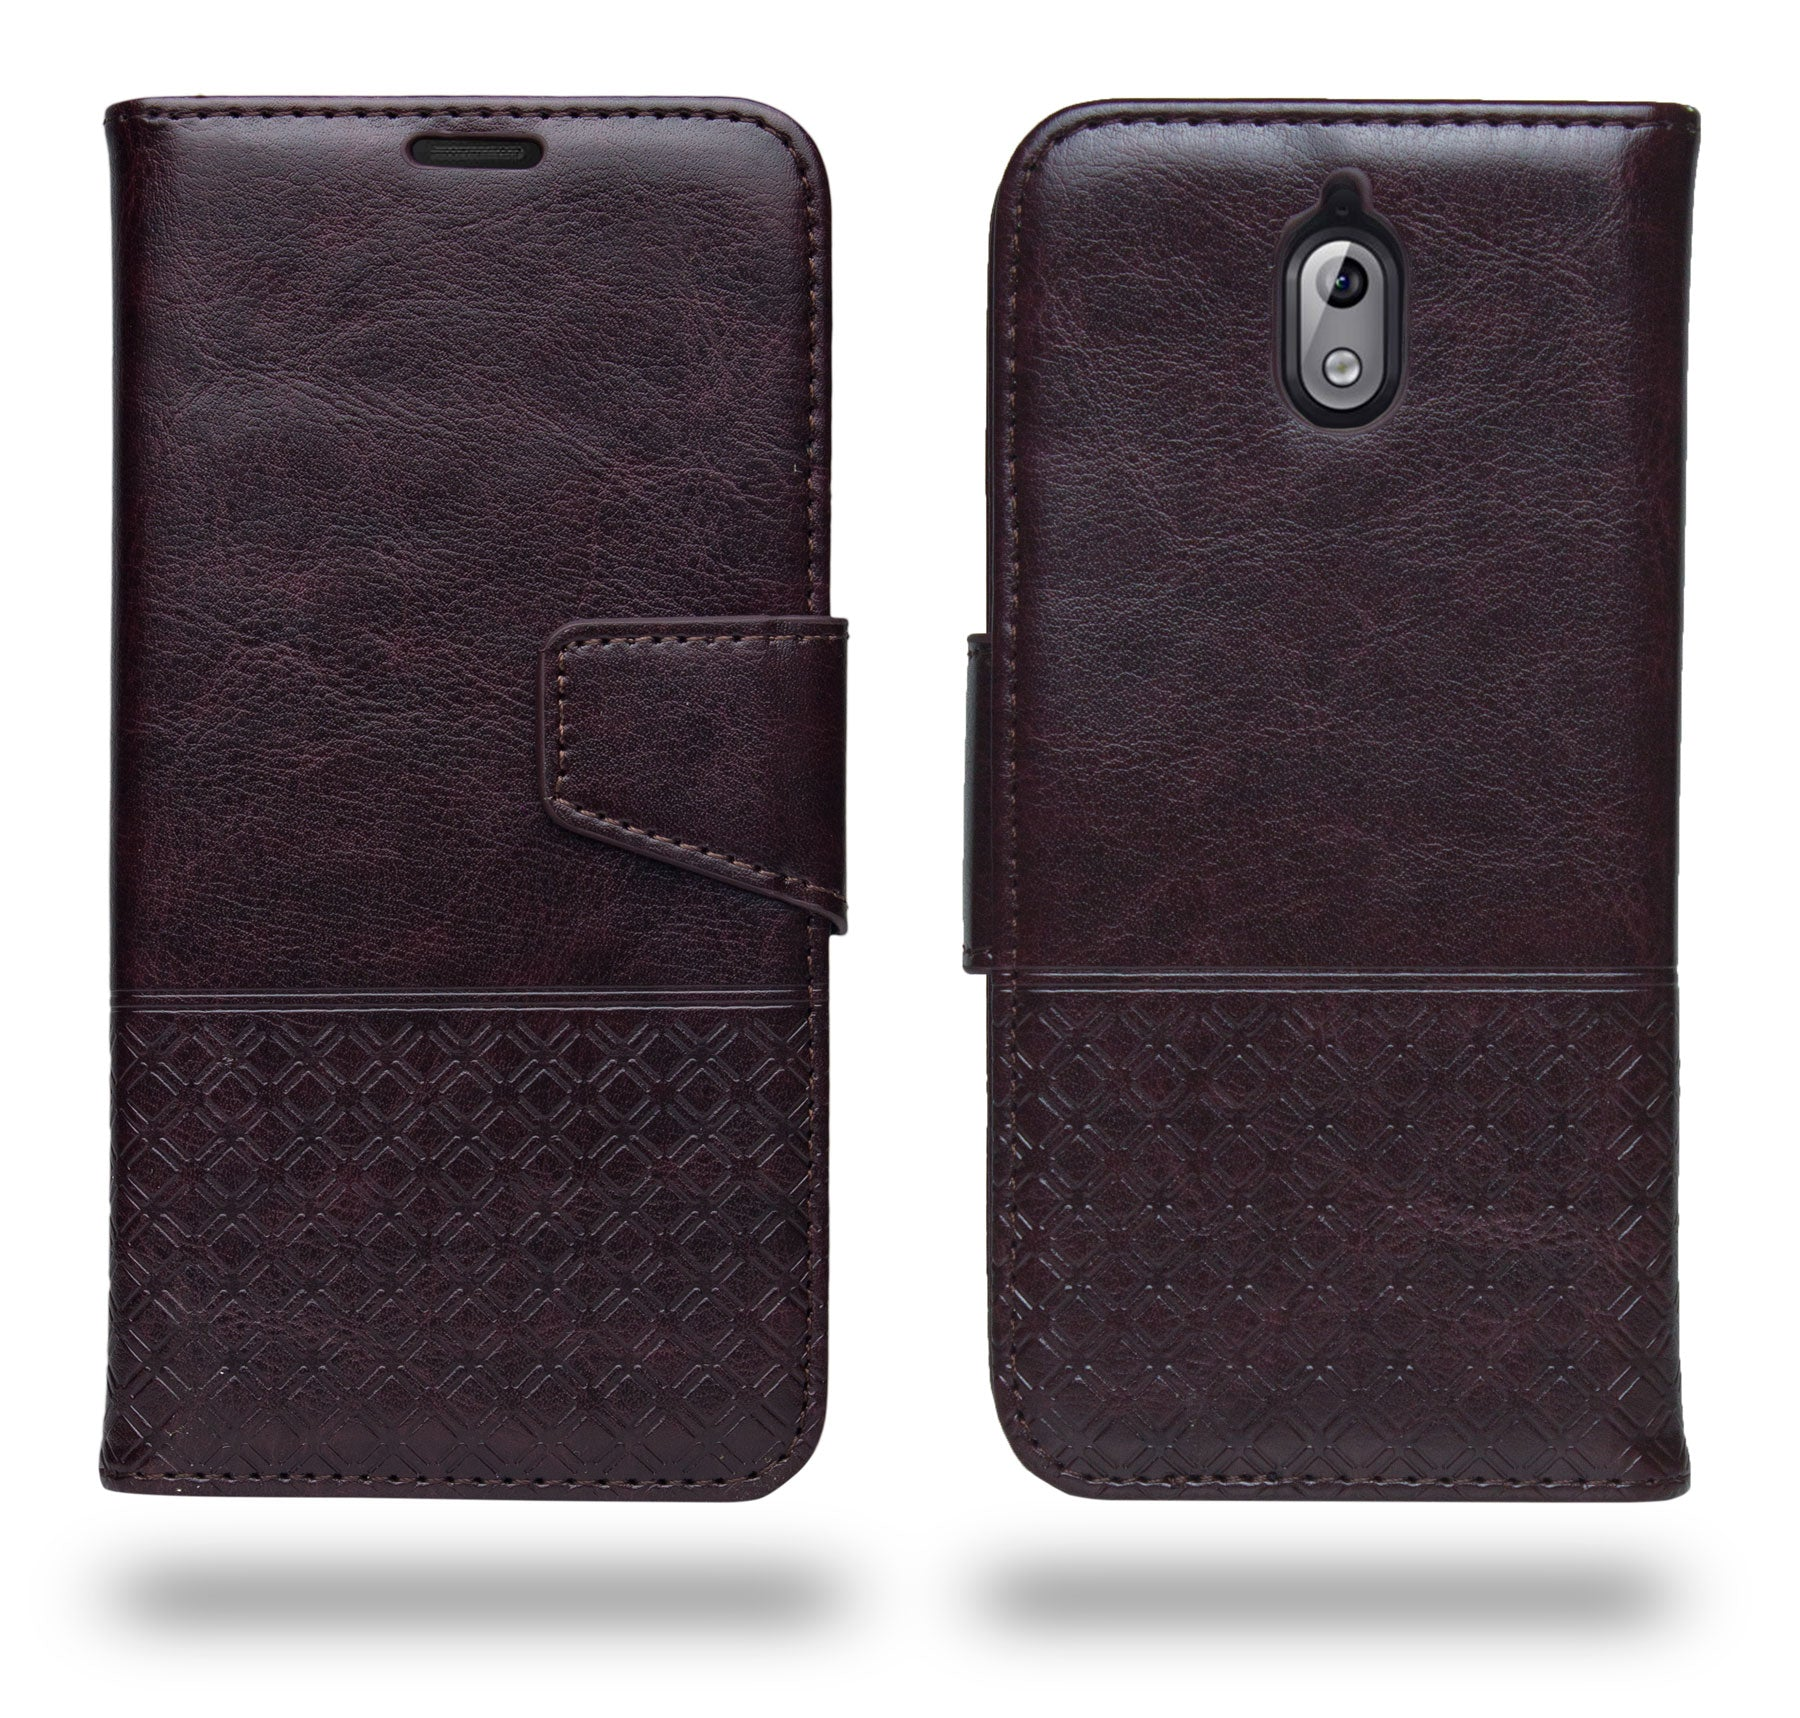 Ceego Luxuria Flip Cover for Nokia 3.1 - Chestnut Brown